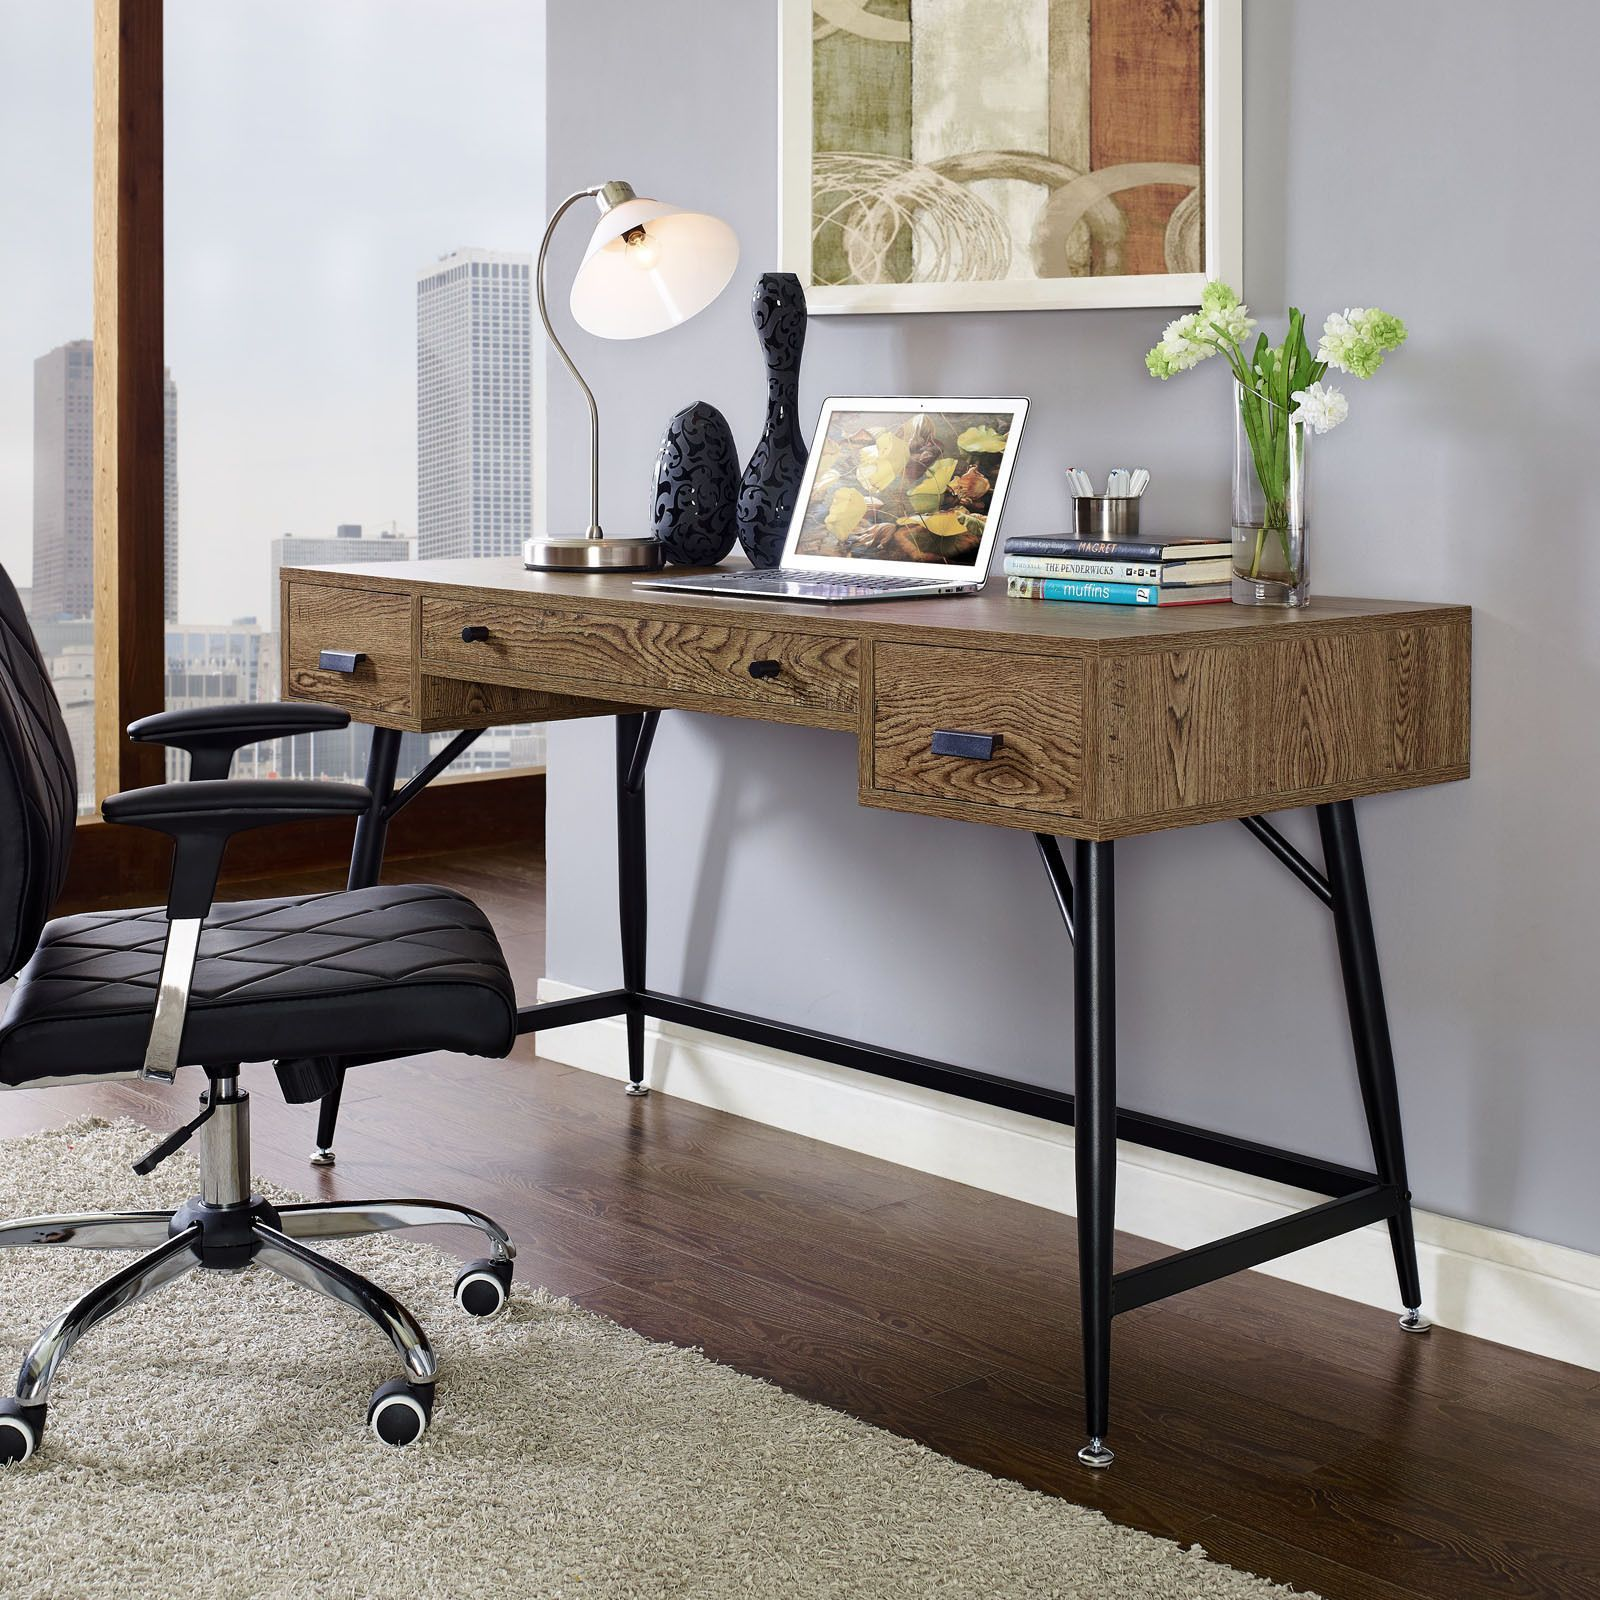 Add a retro look to your home office with this walnutcolored